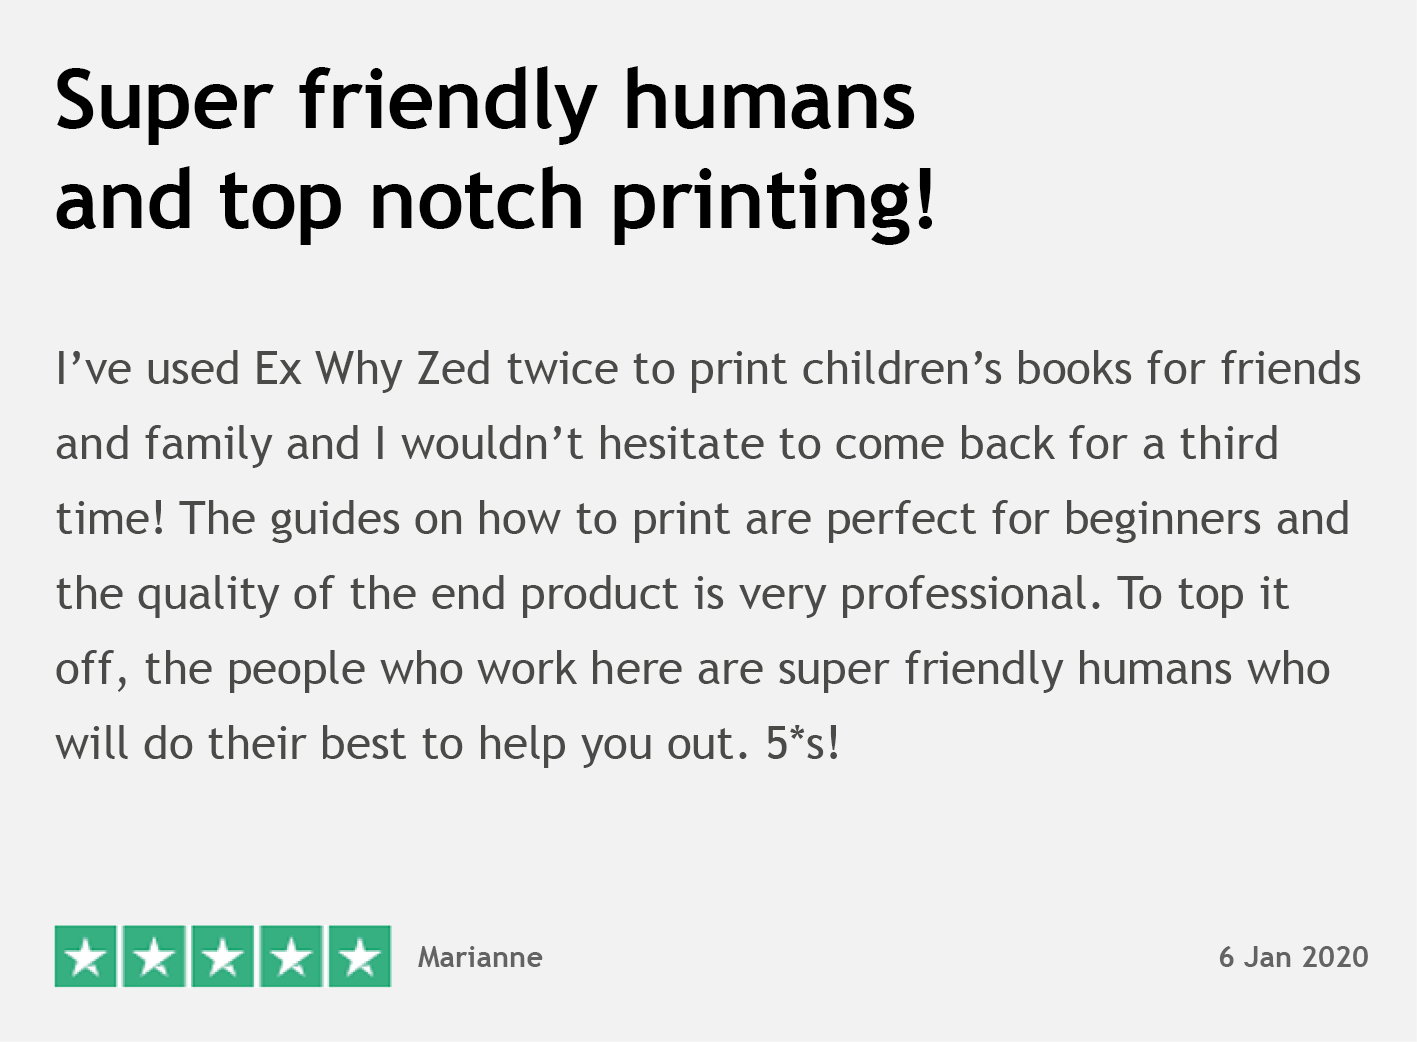 Let's get started on your print journey. Complete this quick form for our best quote (Takes about 1 min) Ex Why Zed